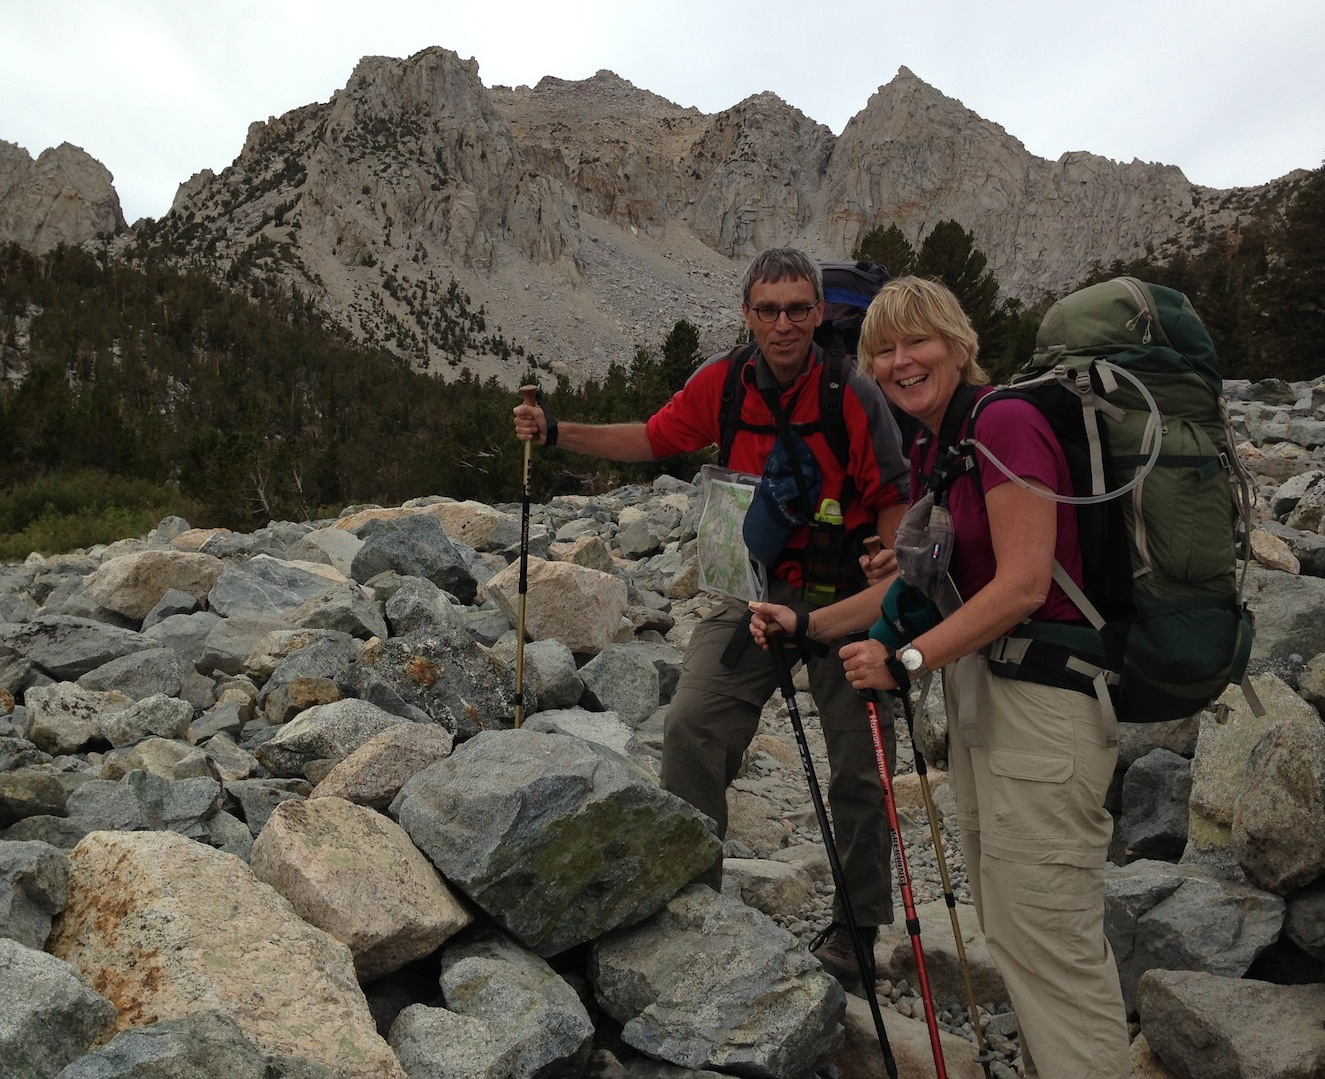 Globe-trotting hikers Annegien and Geert-jan from Amsterdam (!!) on the boulder field on the way to Kearsarge Pass on Aug. 31.